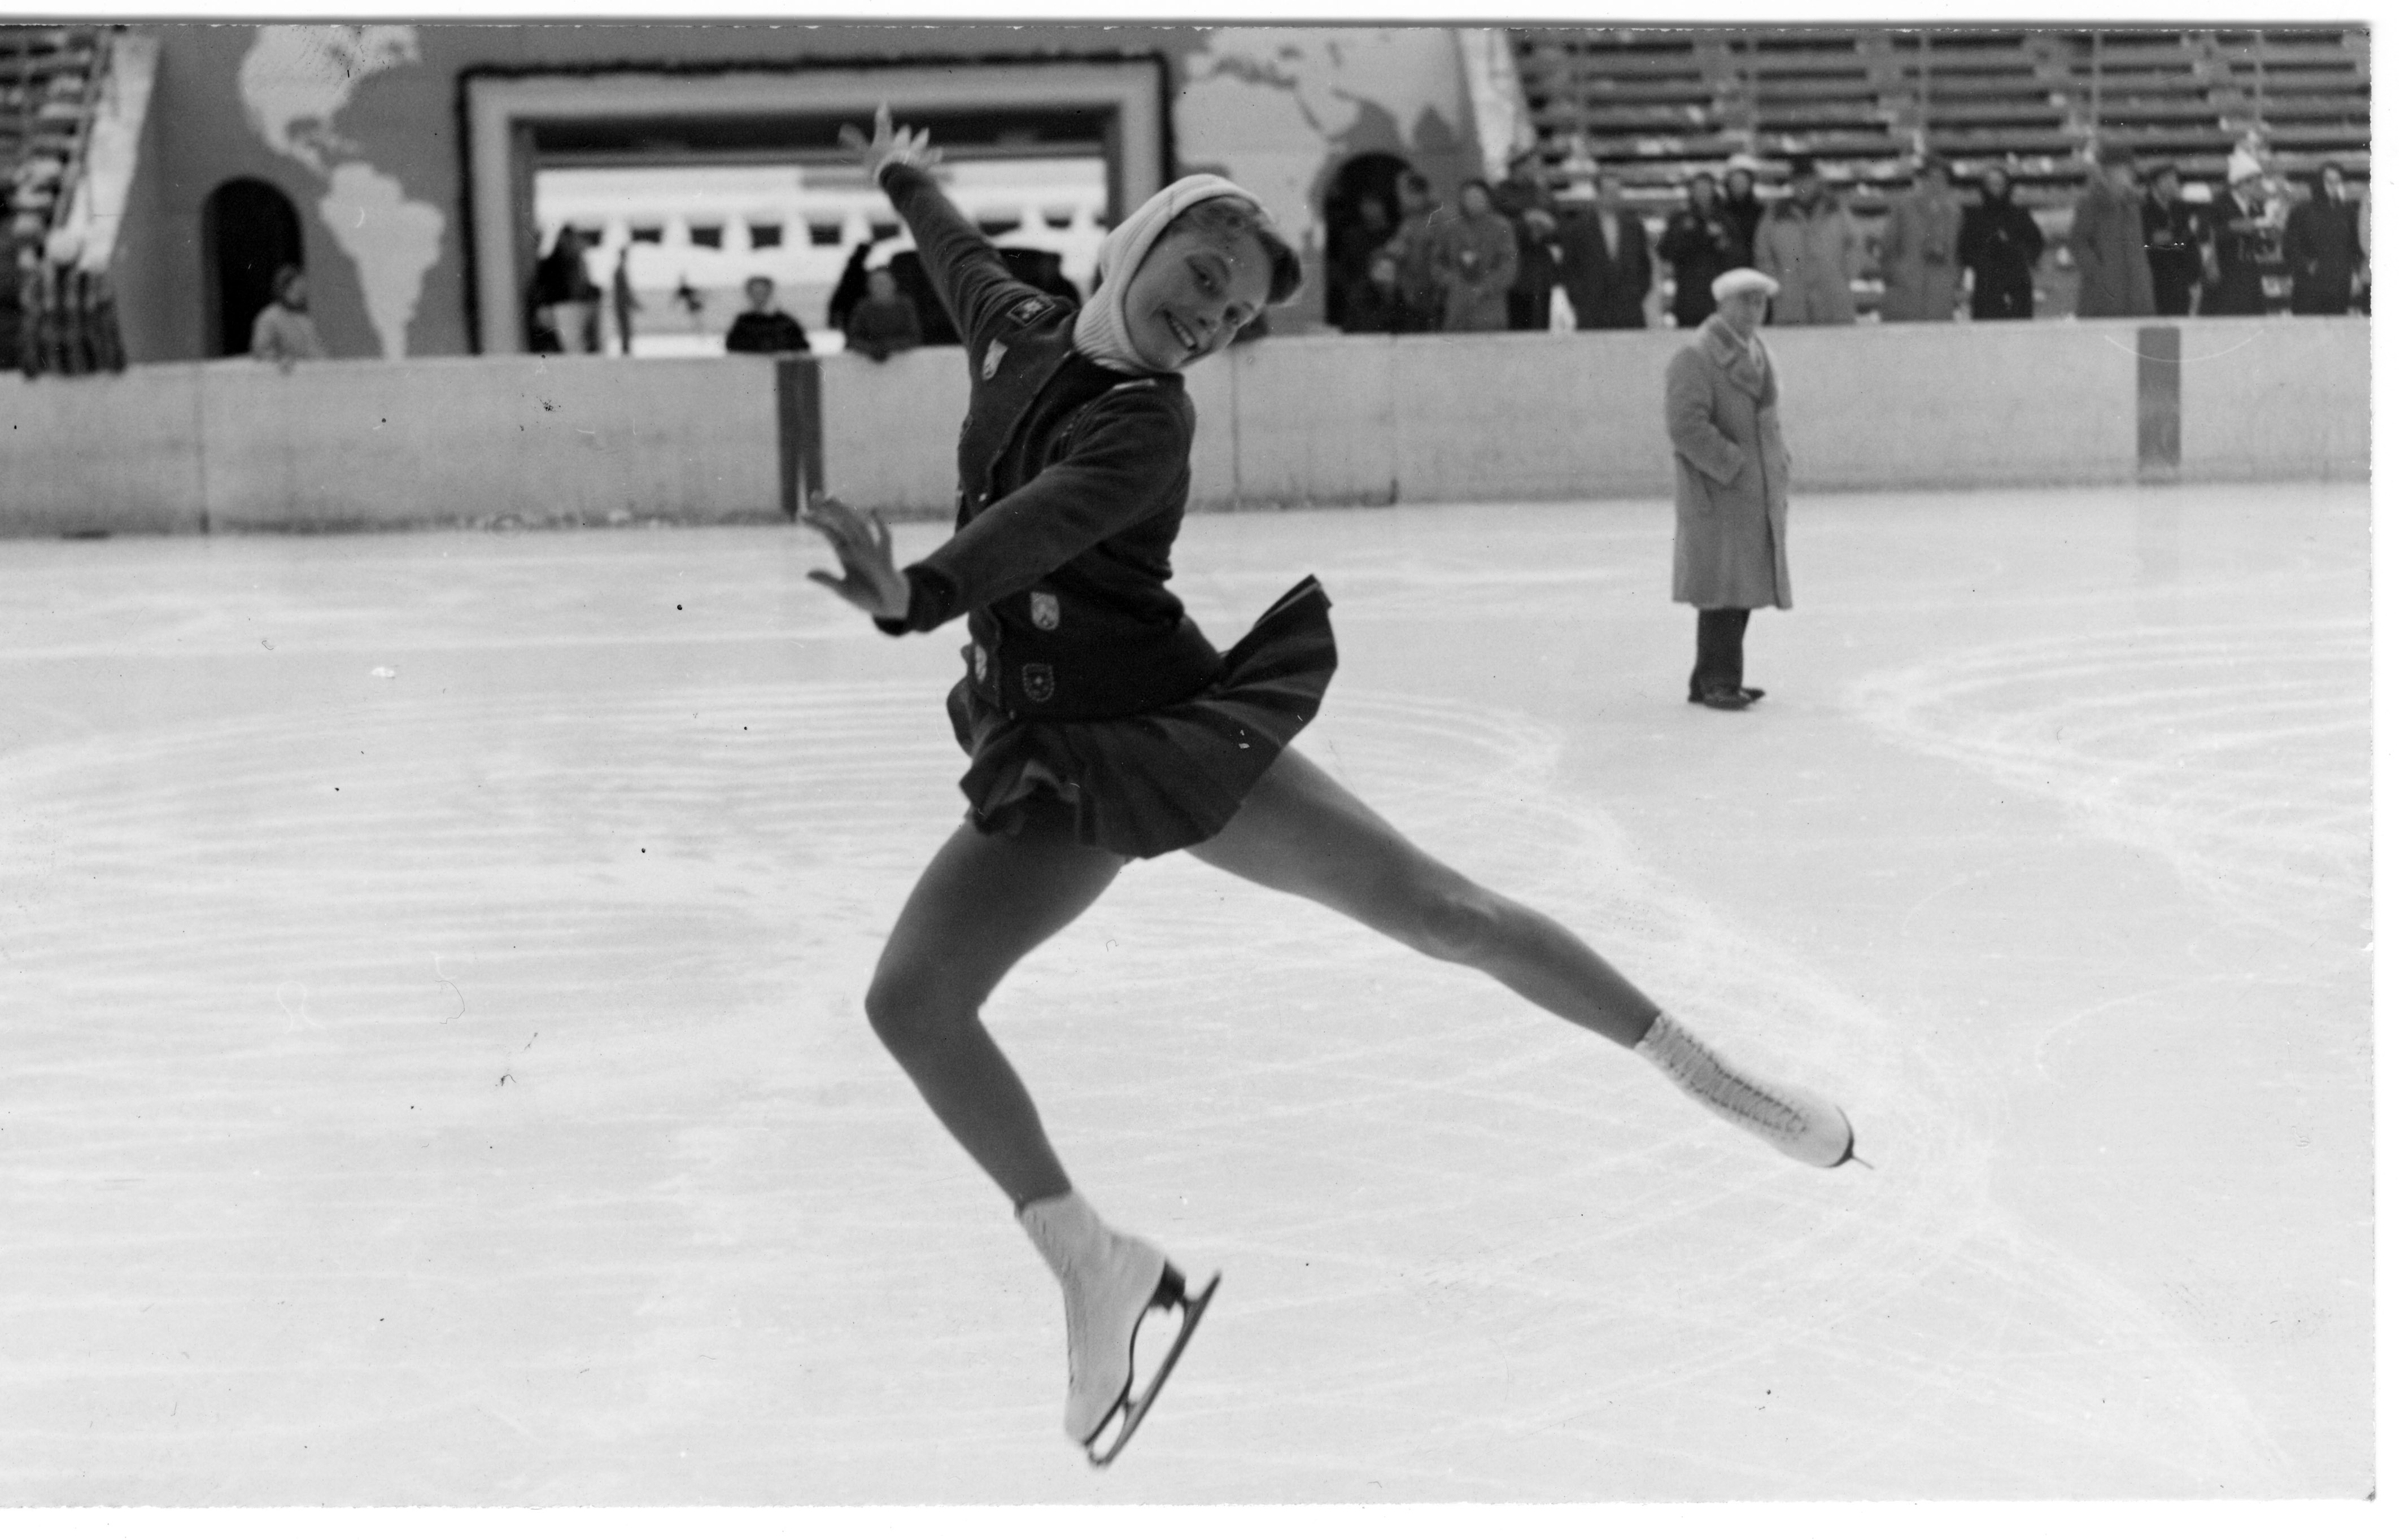 Carol Heiss performs a mid-air arabesque in a black and white photo in an indoor ice rink,